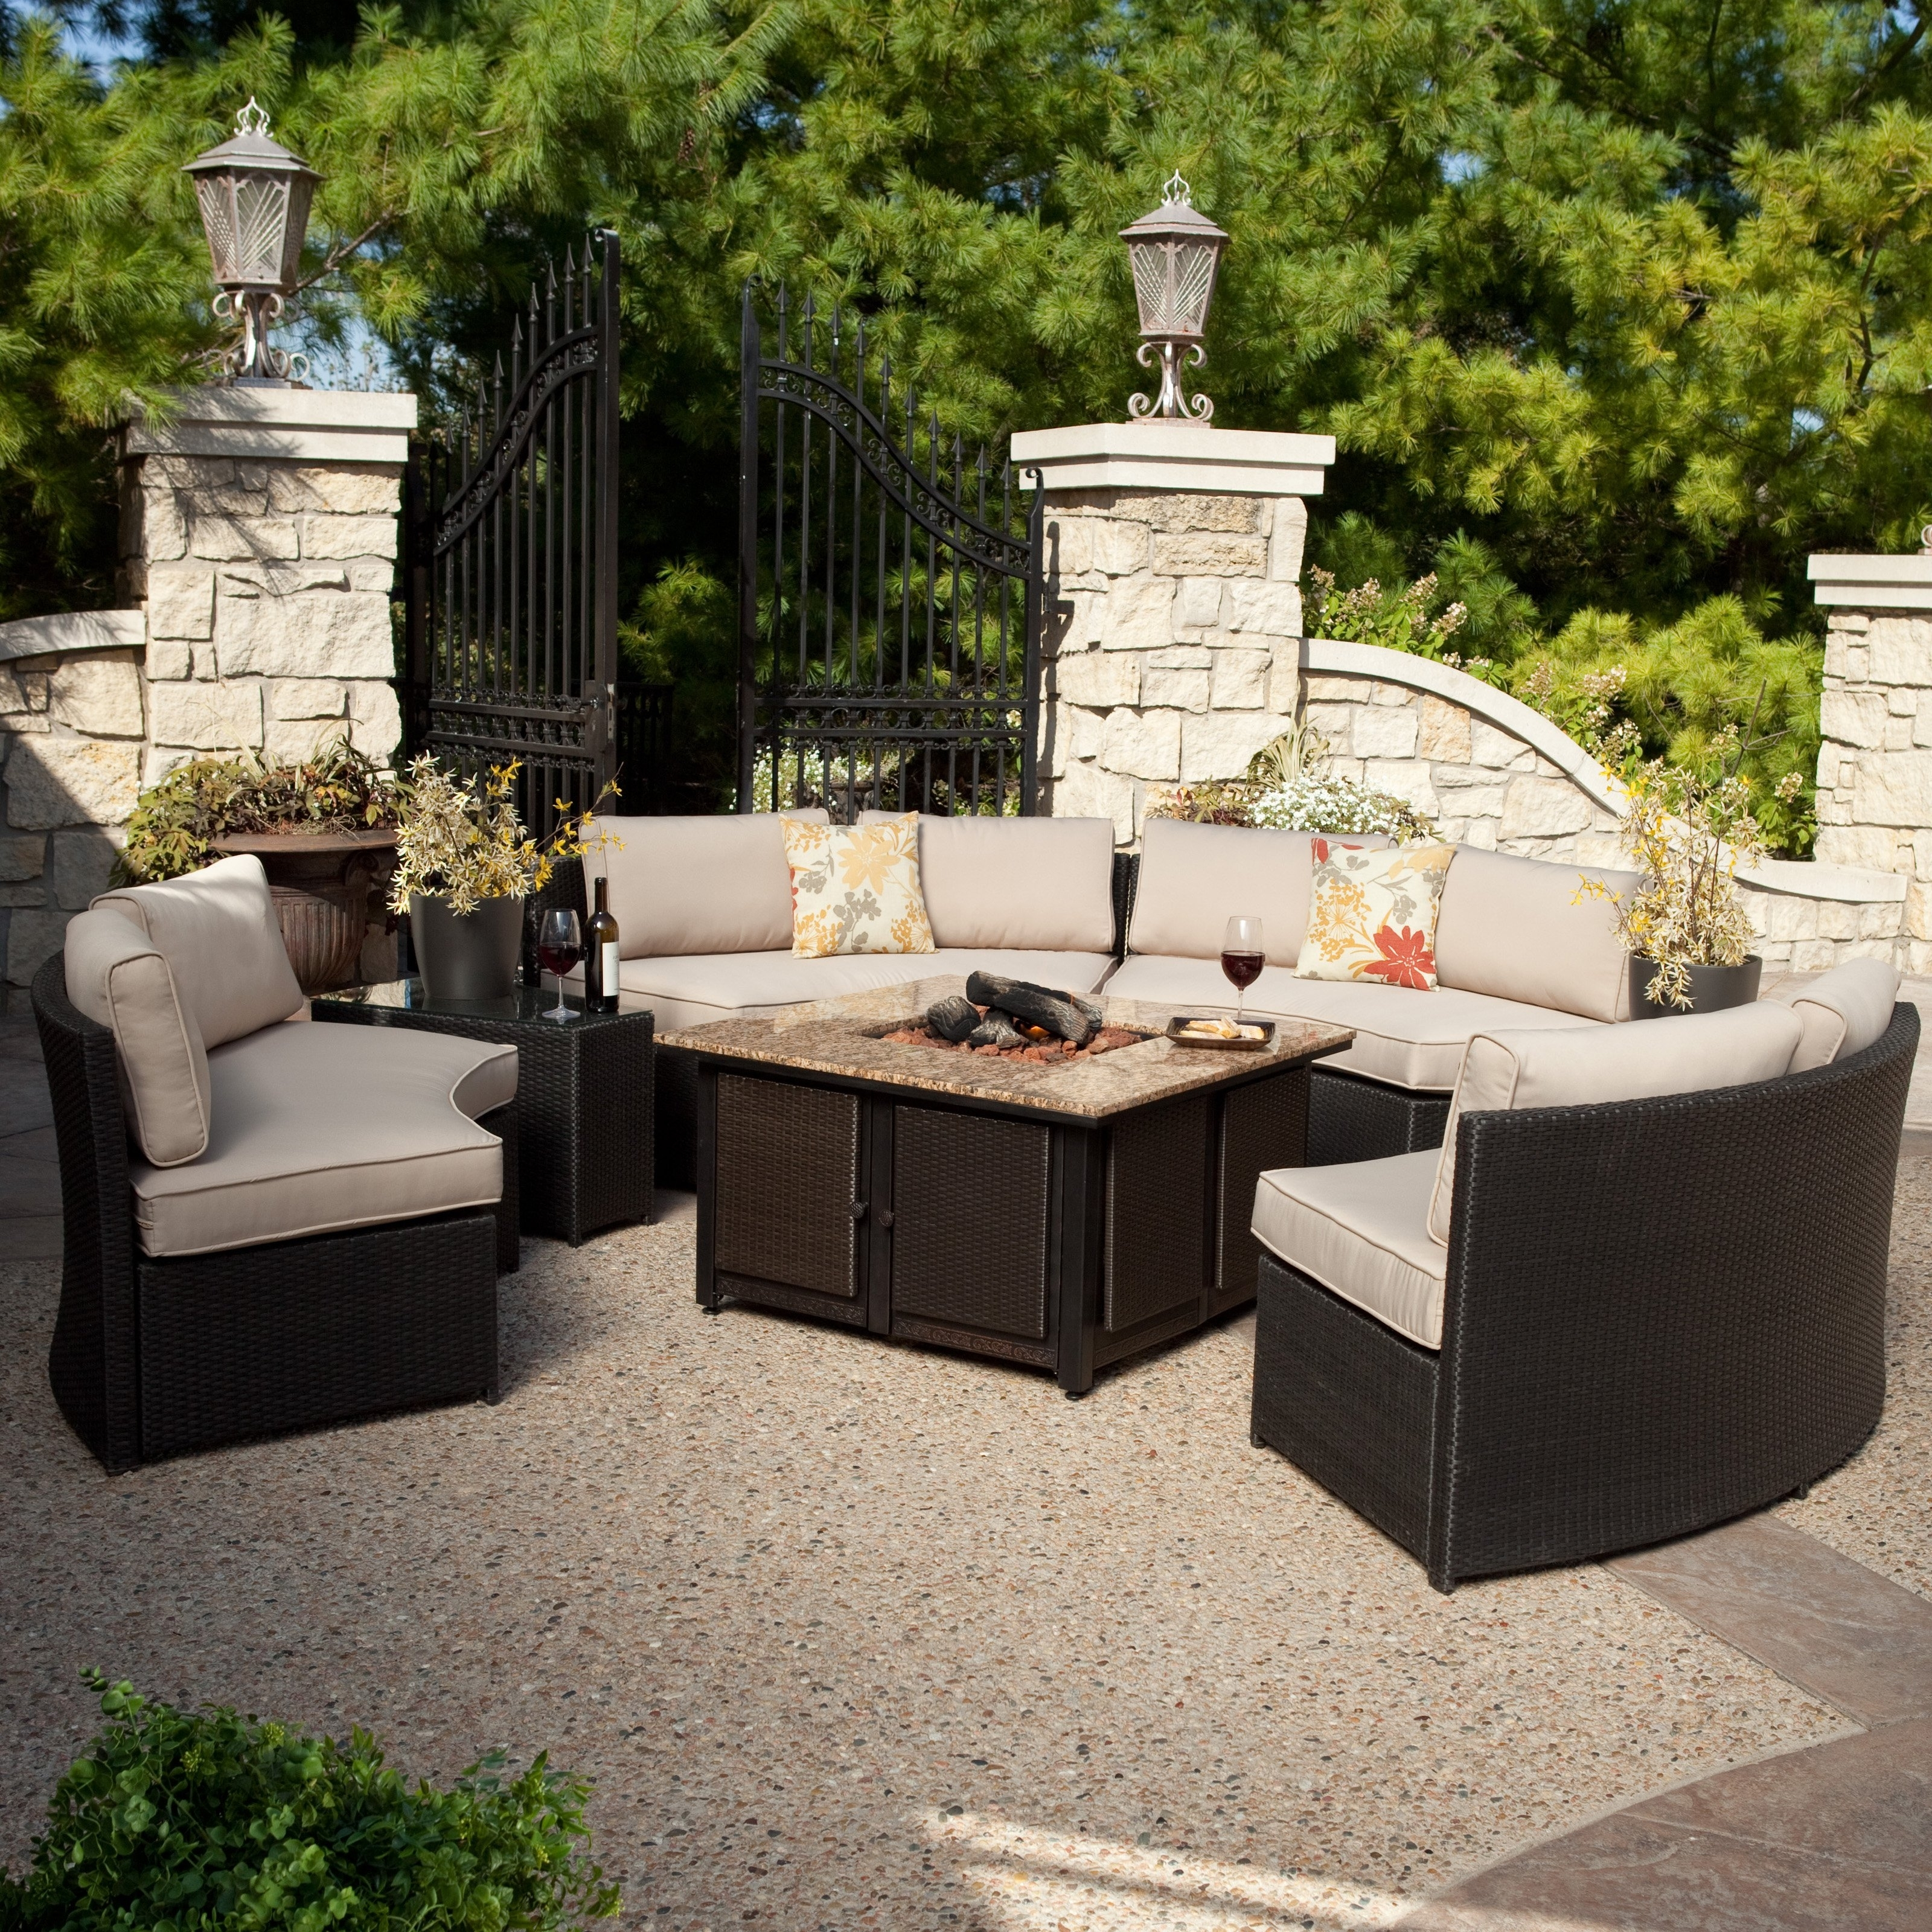 Patio Furniture Conversation Sets With Fire Pit In Trendy Revisited Fire Pit Conversation Sets Shrewd Patio Furniture Decor (View 3 of 20)